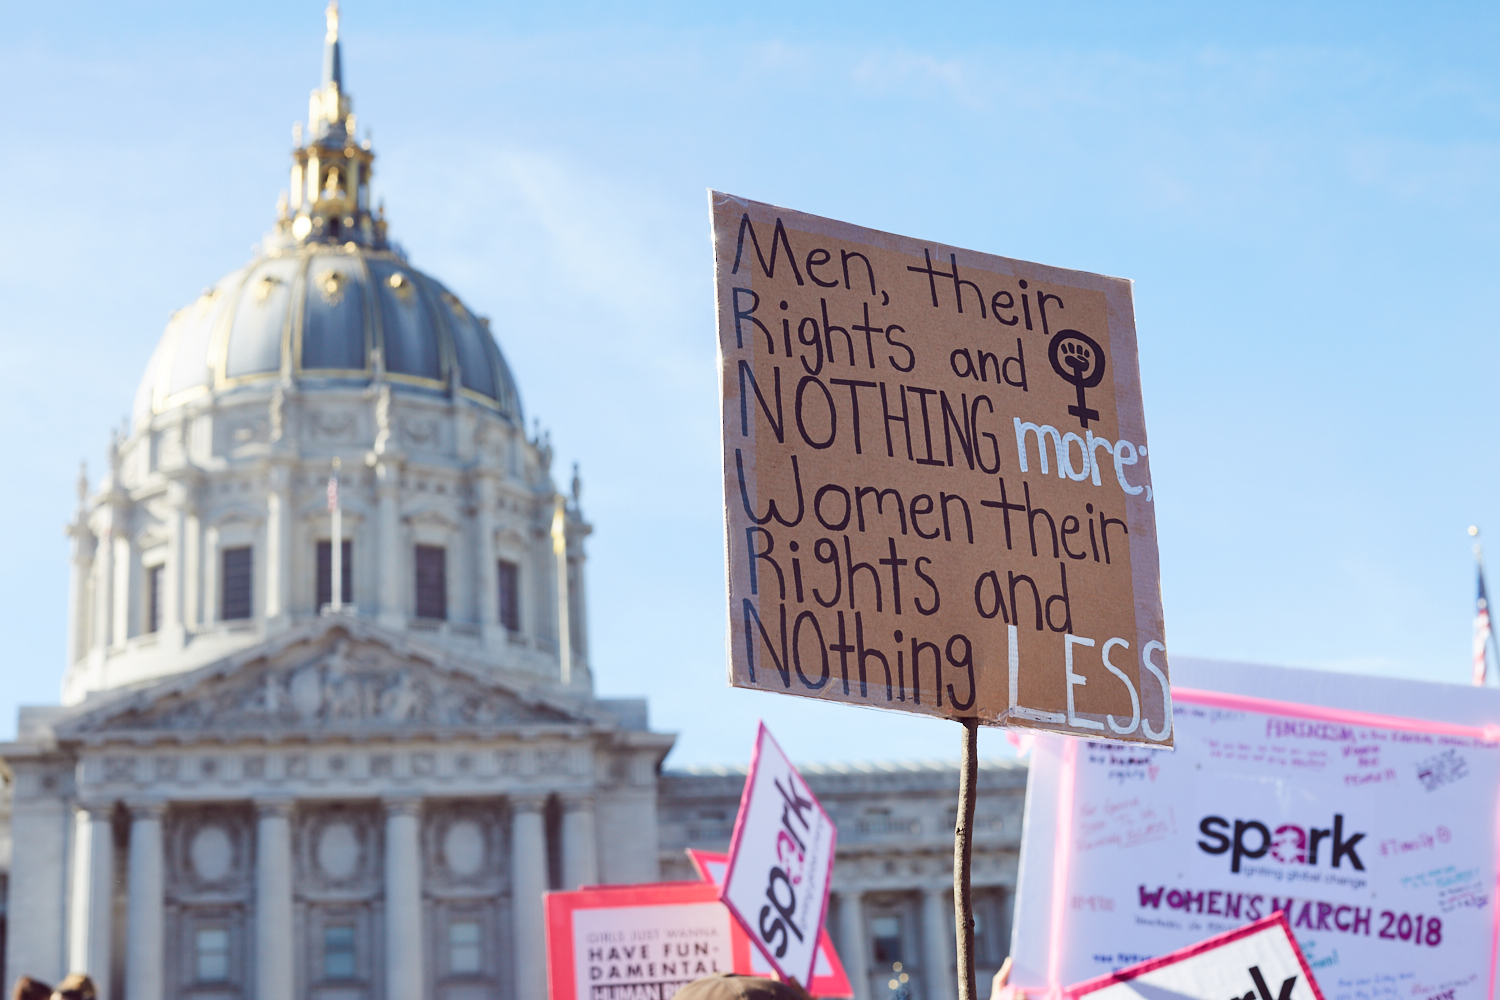 2018-sf-womens-march-sophia-liu-photoraphy_2.jpg